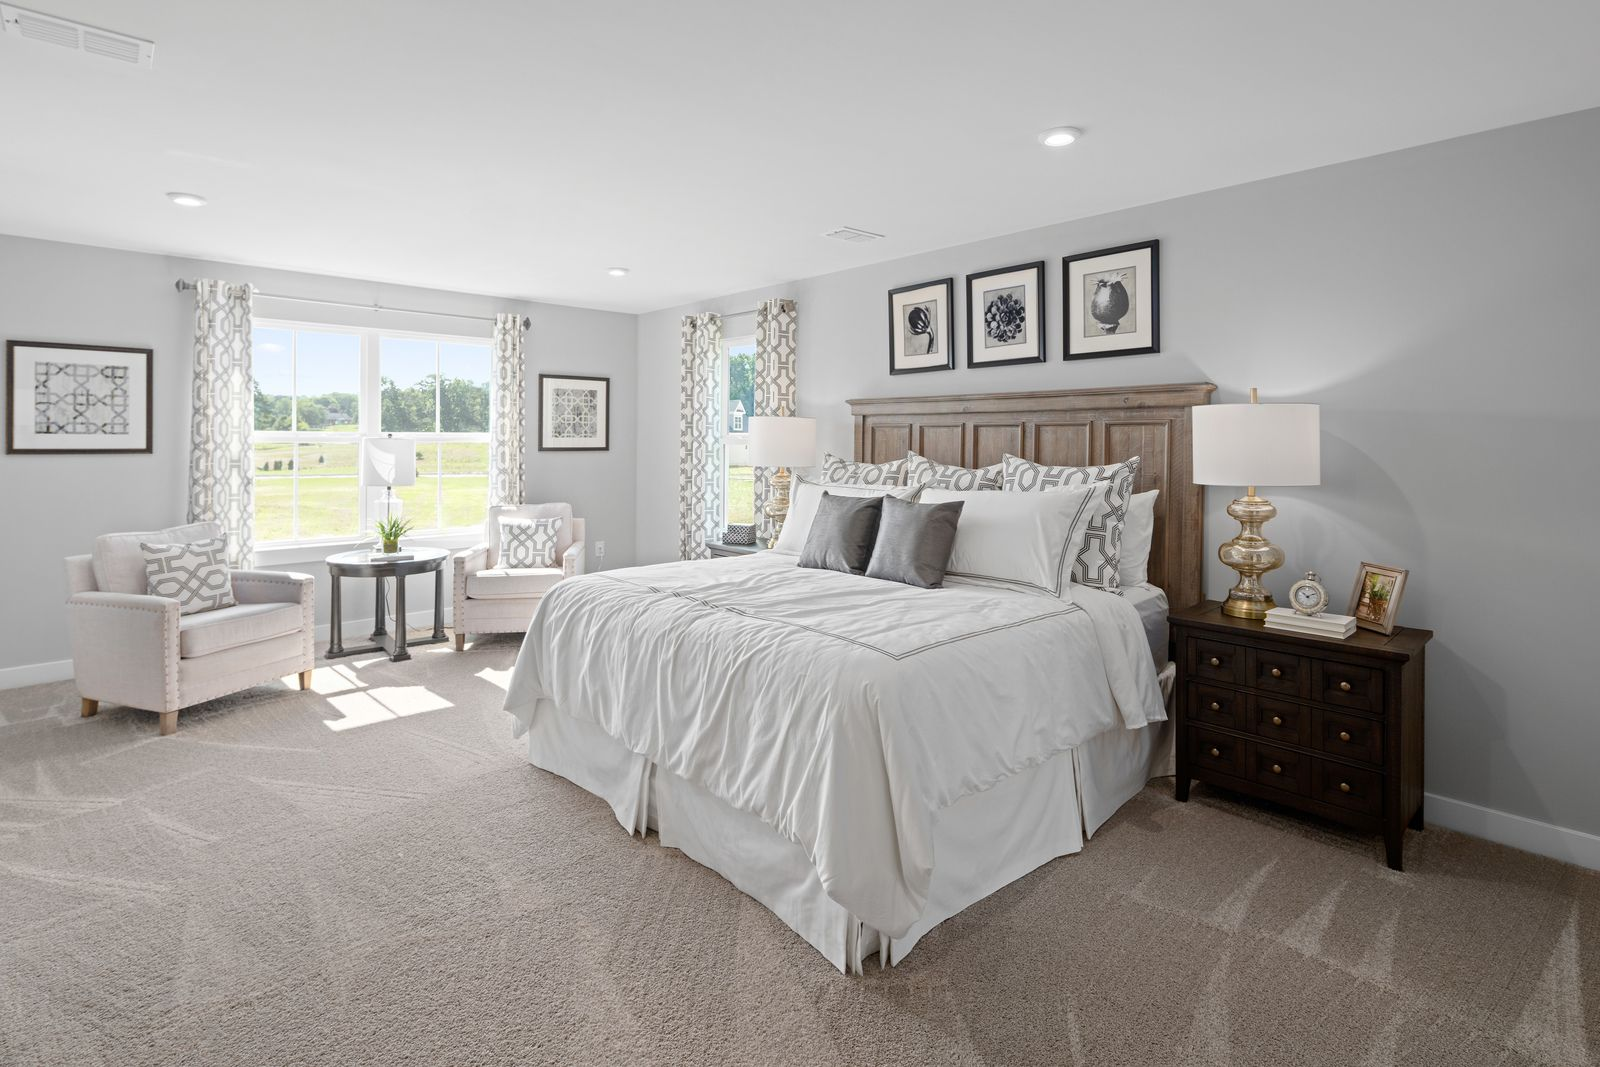 Bedroom featured in the Columbia By Ryan Homes in Philadelphia, NJ